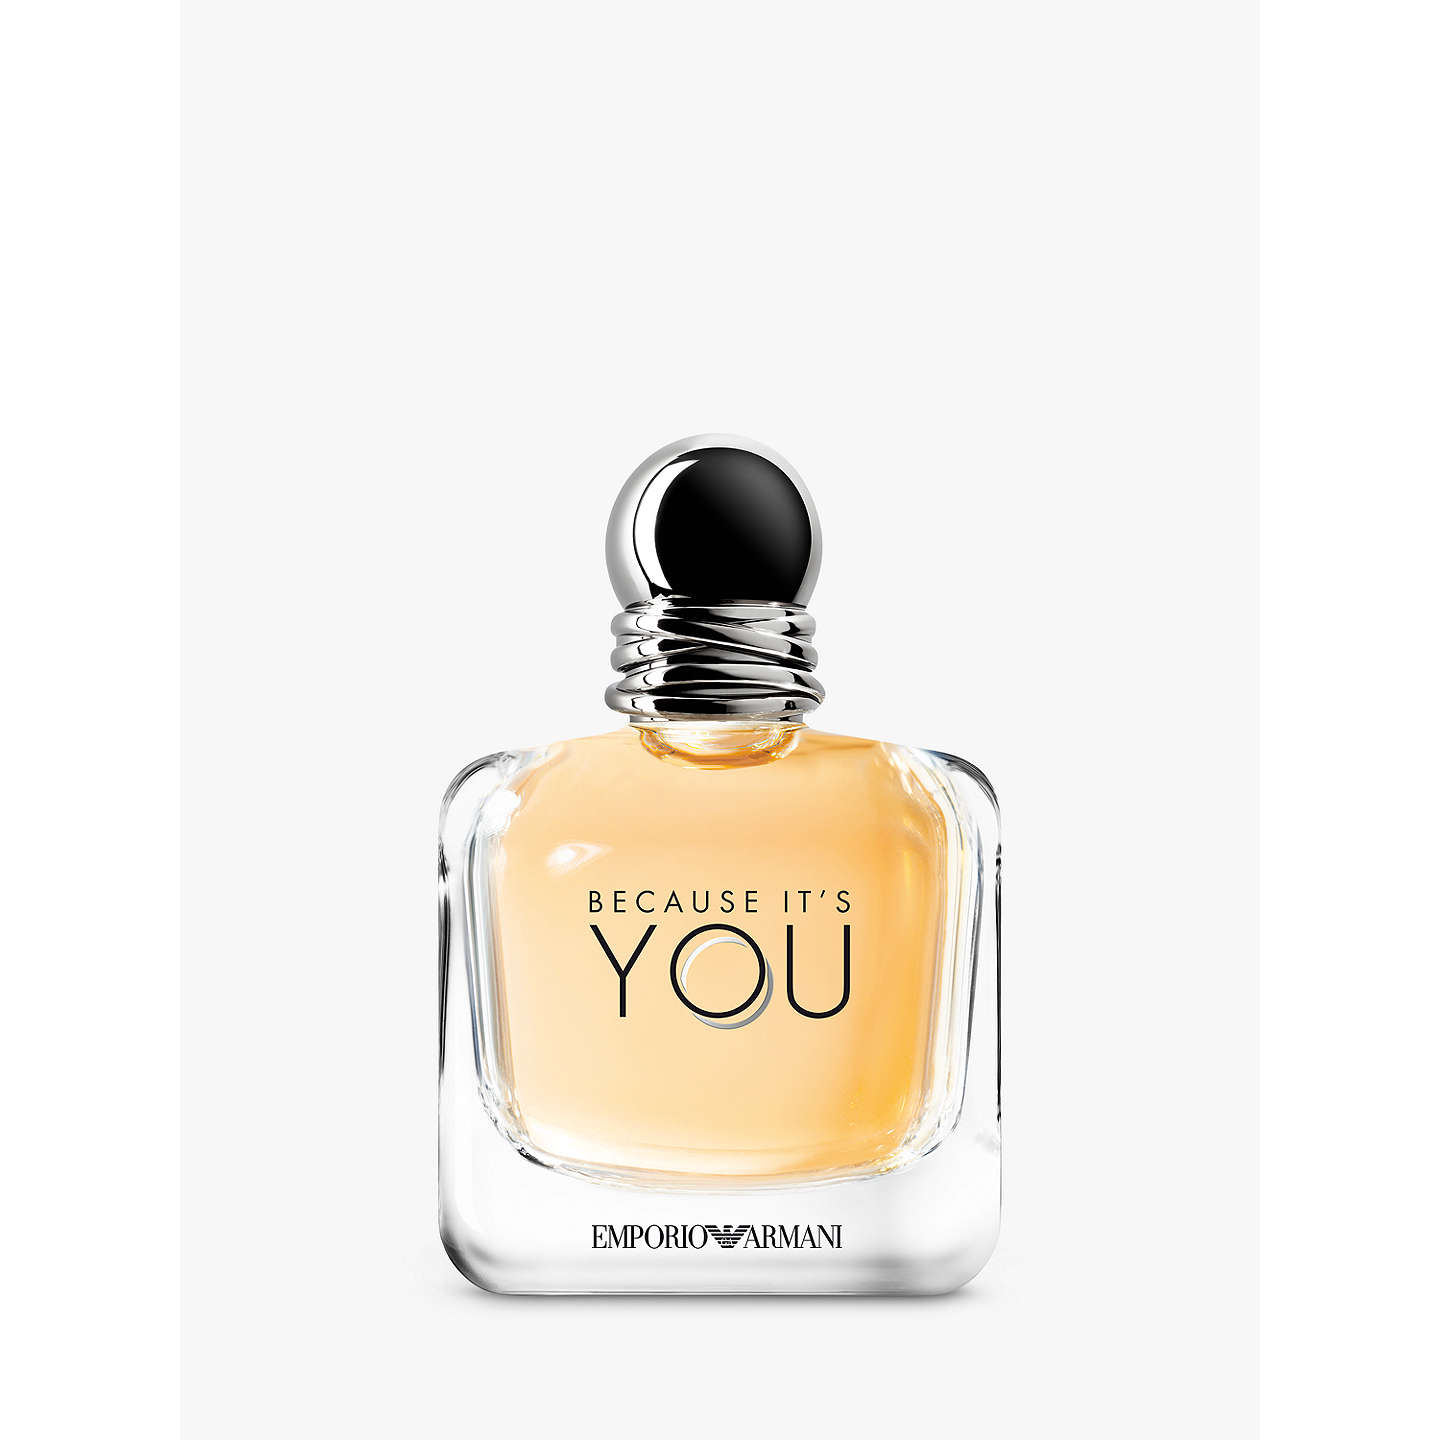 BuyEmporio Armani Because It's You Eau de Parfum, 30ml Online at johnlewis.com